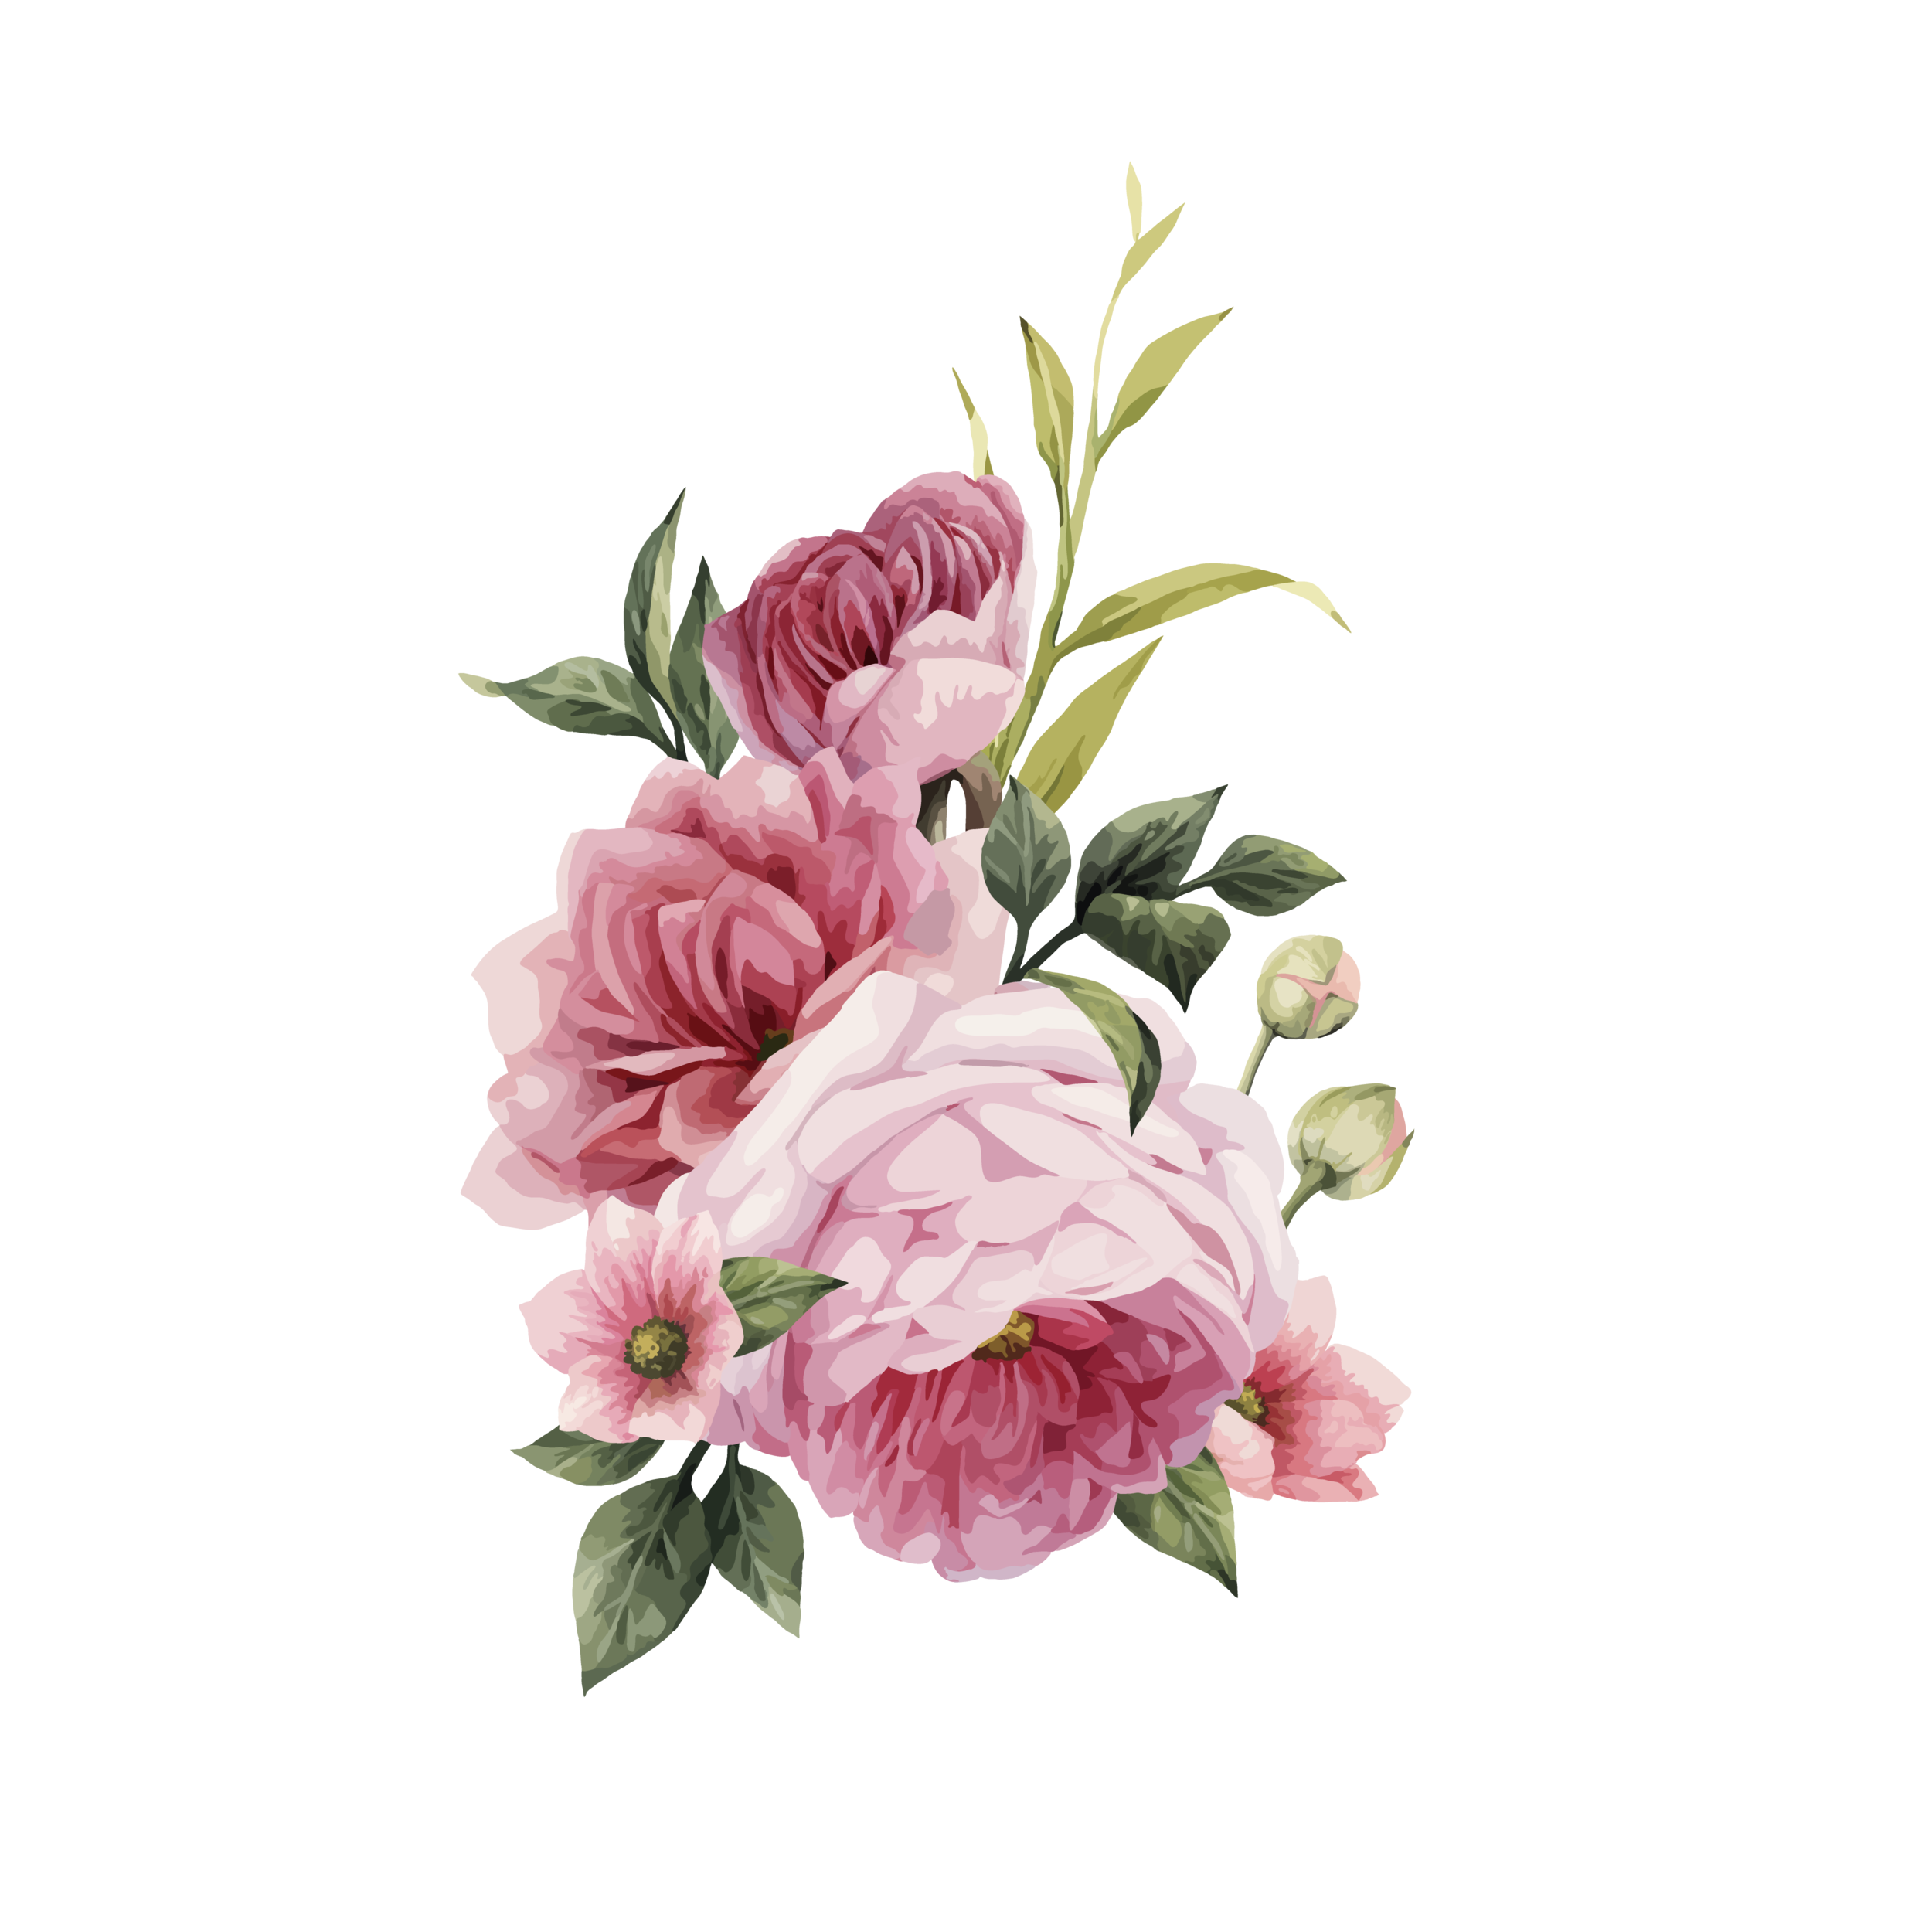 Watercolor Flowers Png Vector Psd And Clipart With: Png Pics Of Flowers & Free Pics Of Flowers.png Transparent